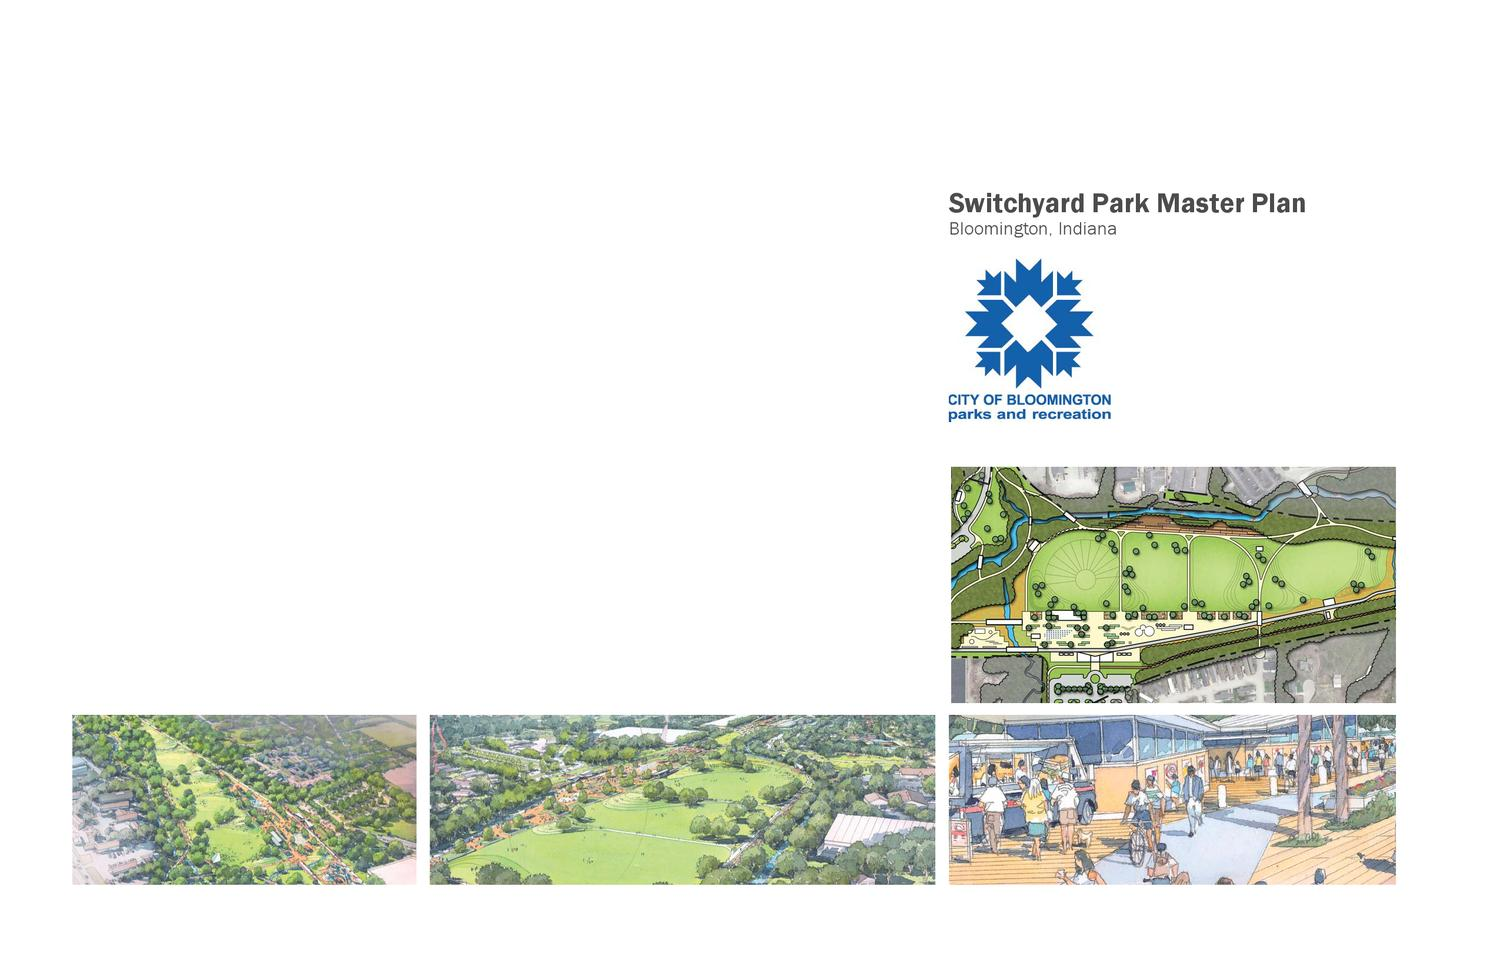 Switchyard park master plan by bloomington indiana parks for Bureau of motor vehicles bloomington indiana